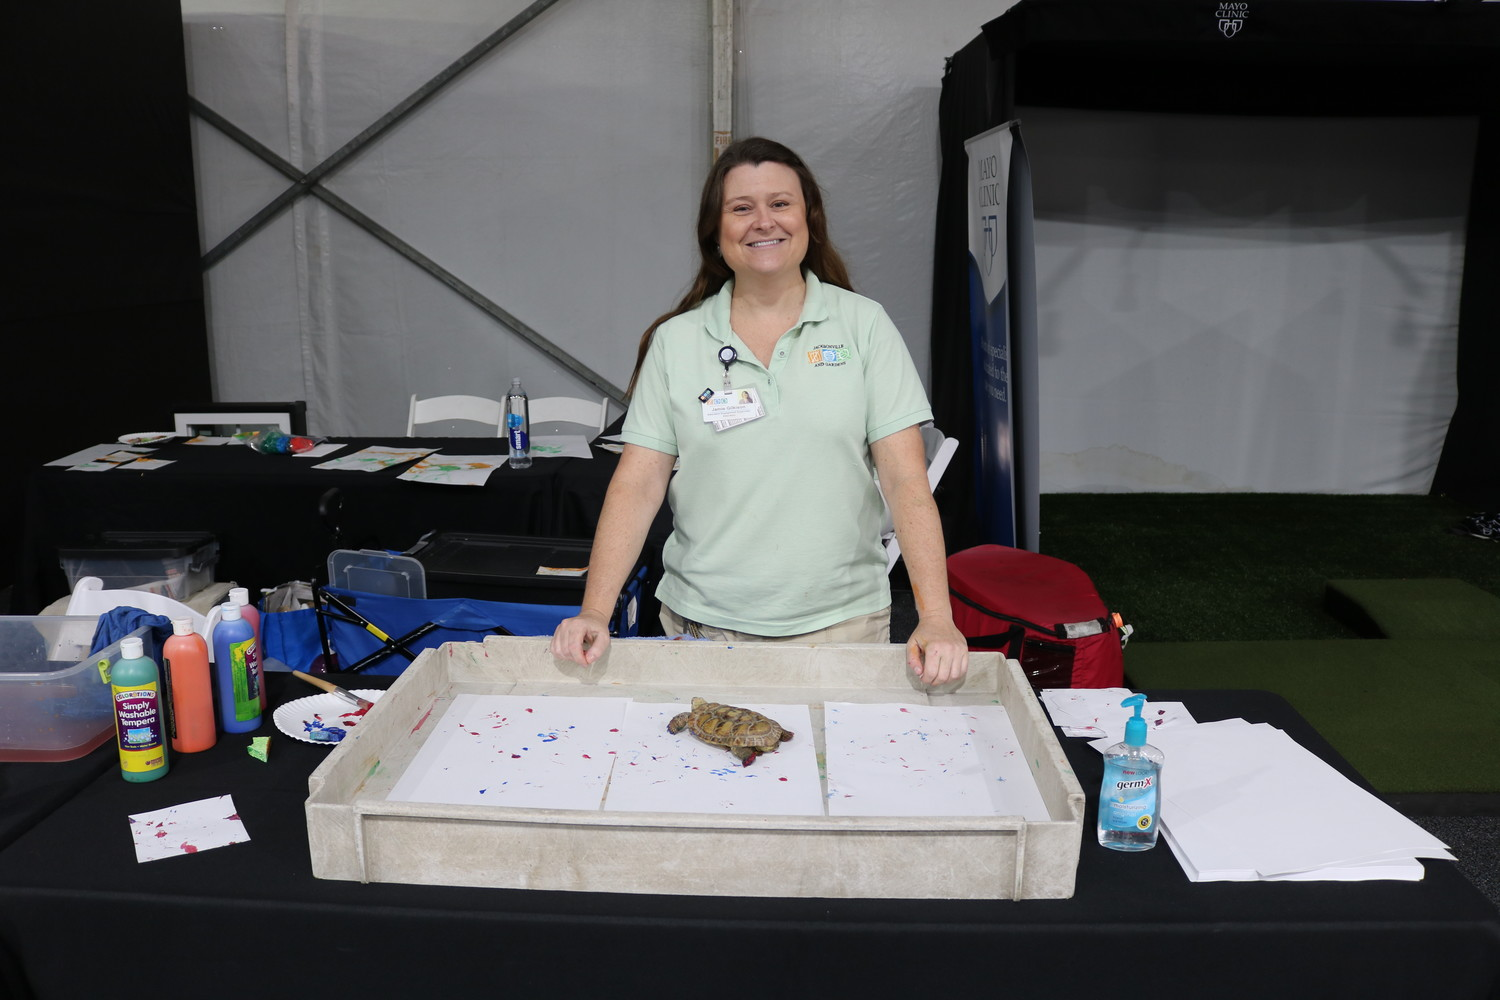 Jamie Gilkison, an education engagement supervisor with the Jacksonville Zoo, poses for a photo behind the Jacksonville Zoo's booth.